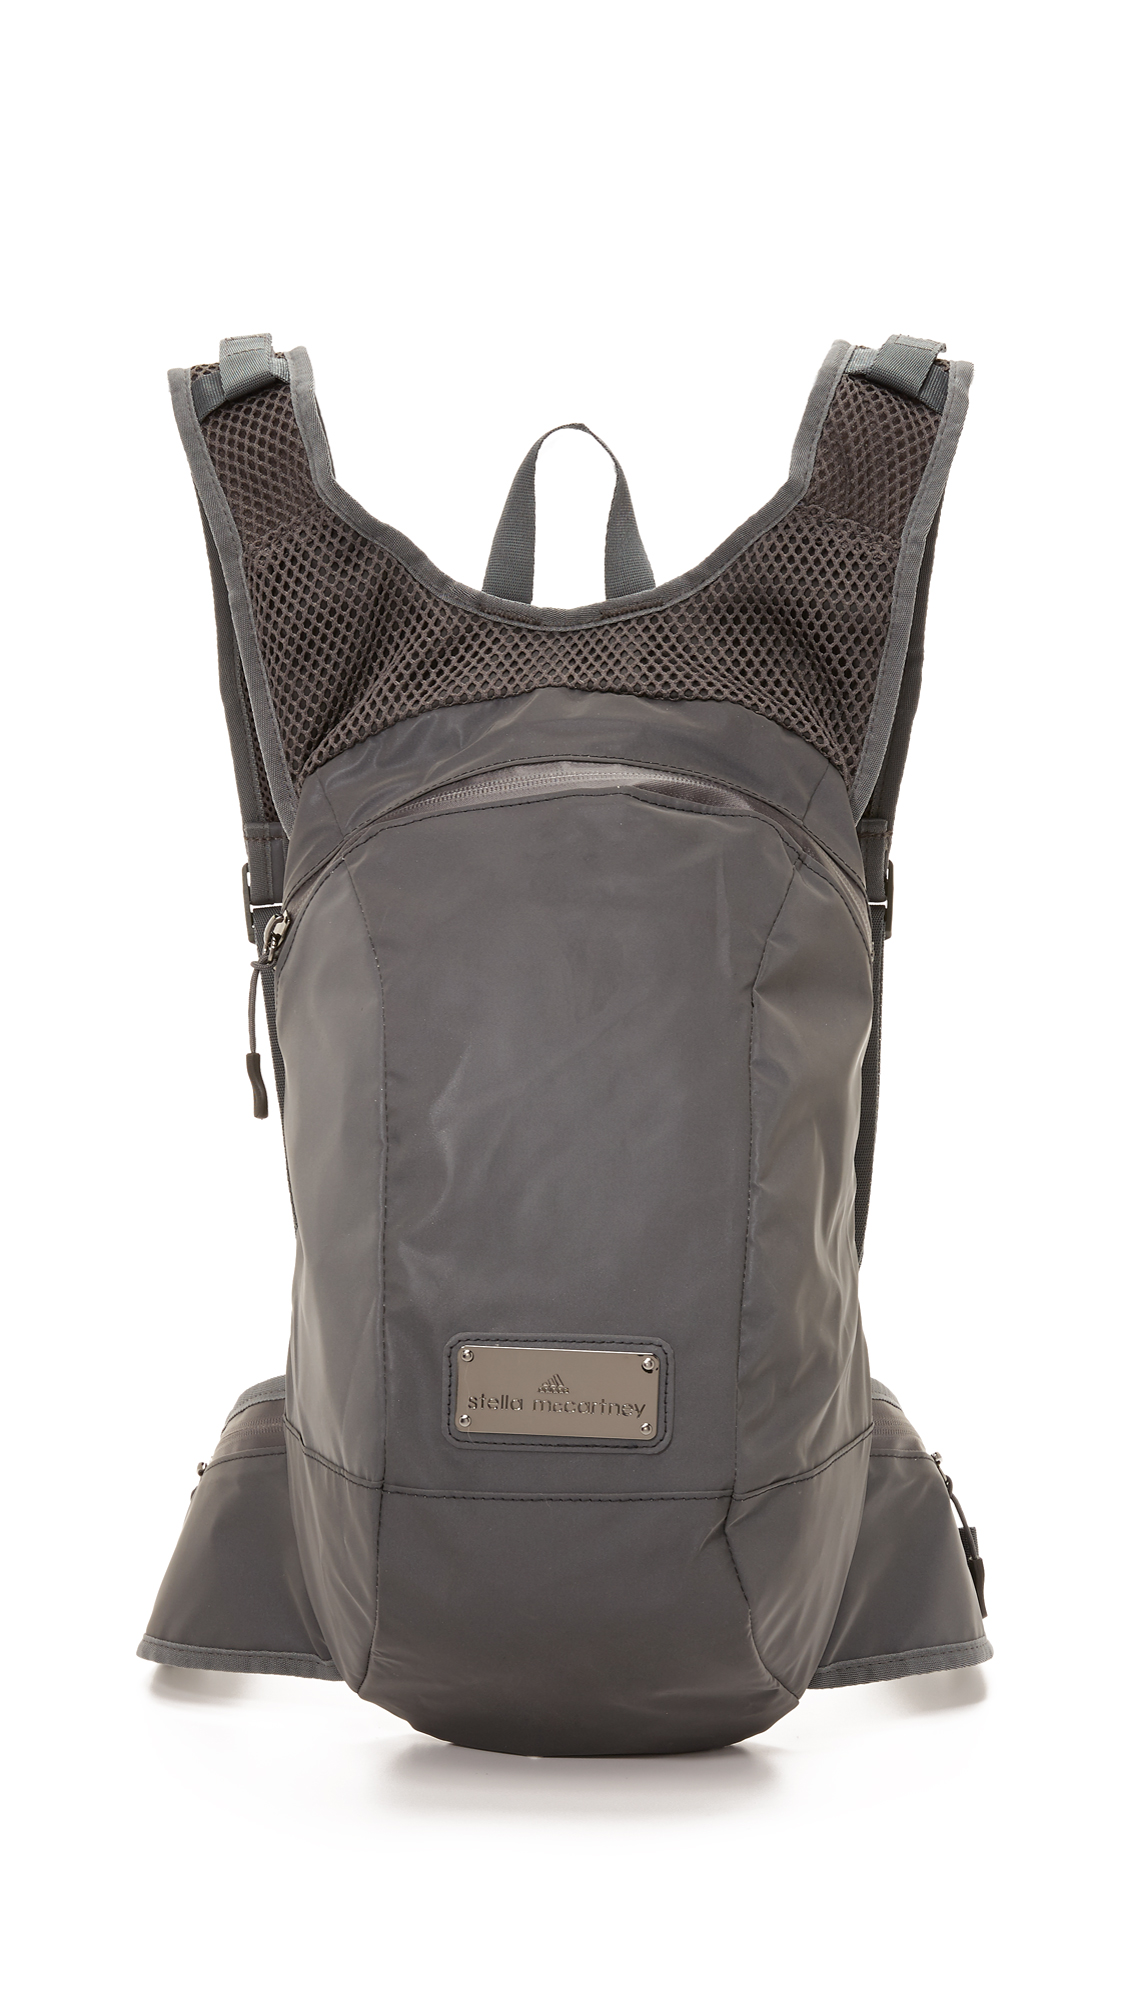 ce3f9109a1ae adidas by Stella McCartney R Backpack